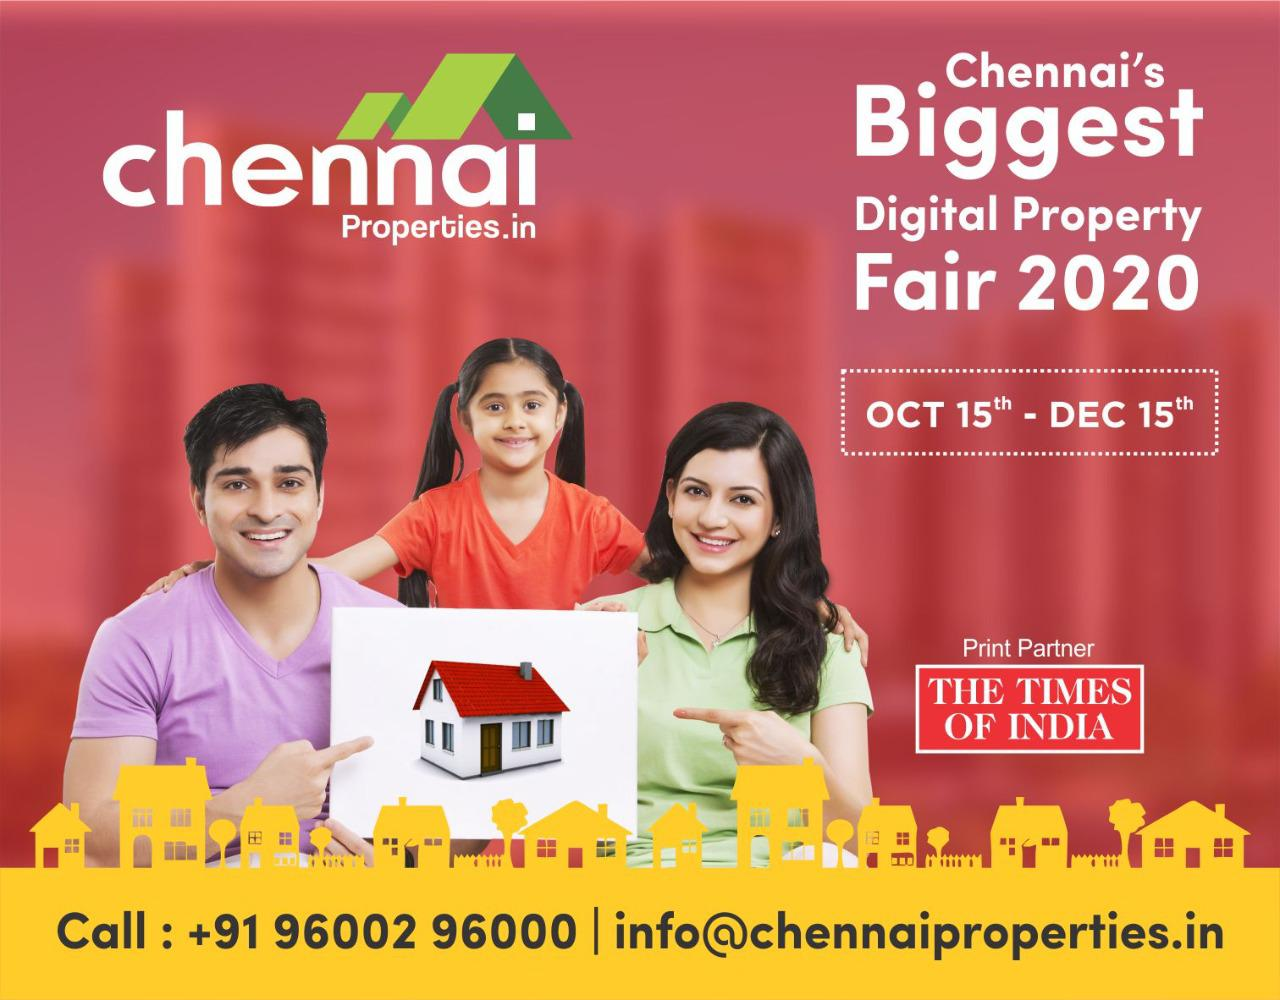 Chennai Properties Digital Property Fair 2020